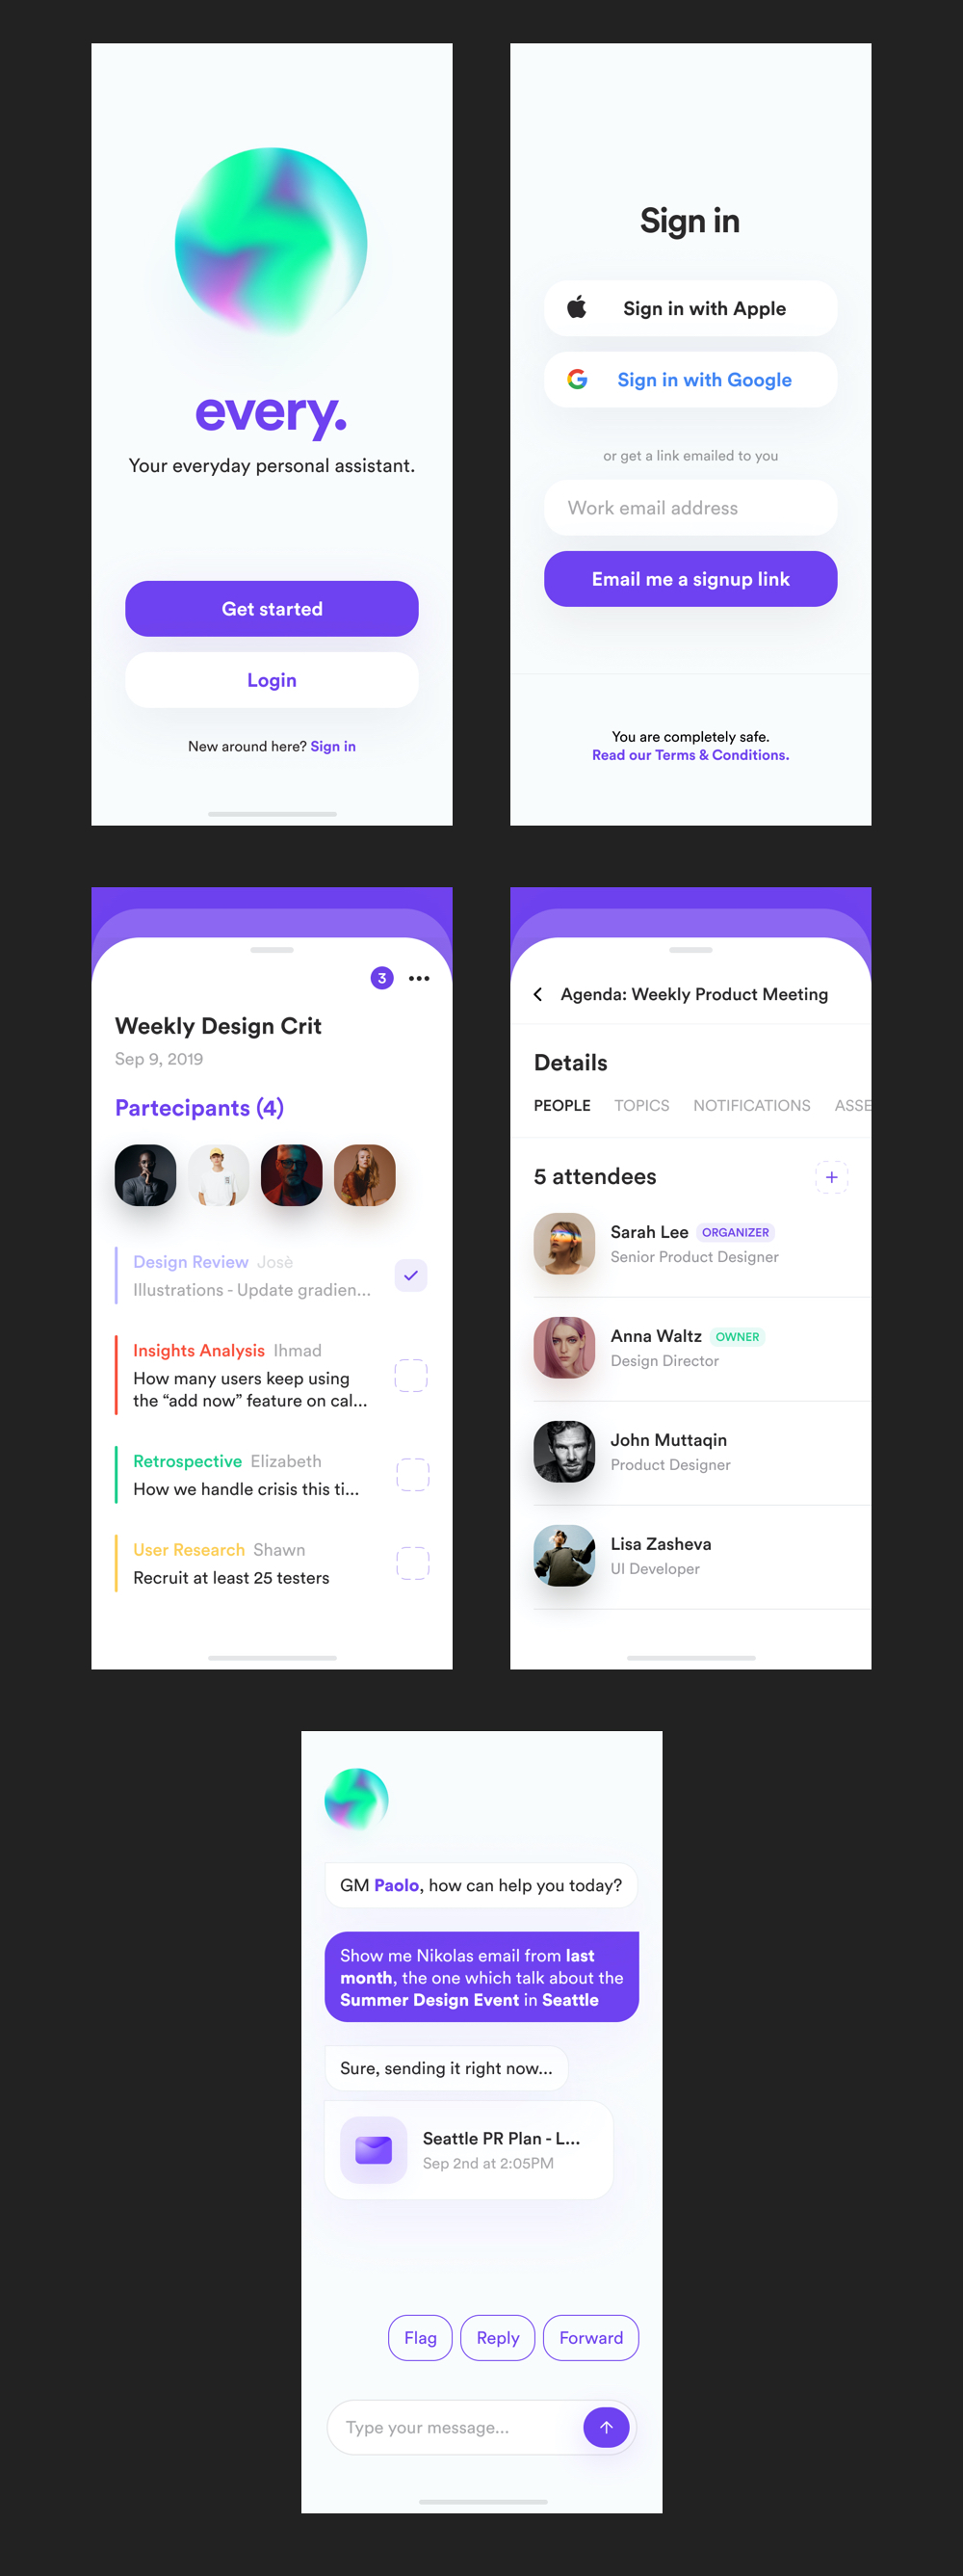 every. UI Kit for Figma from UIGarage